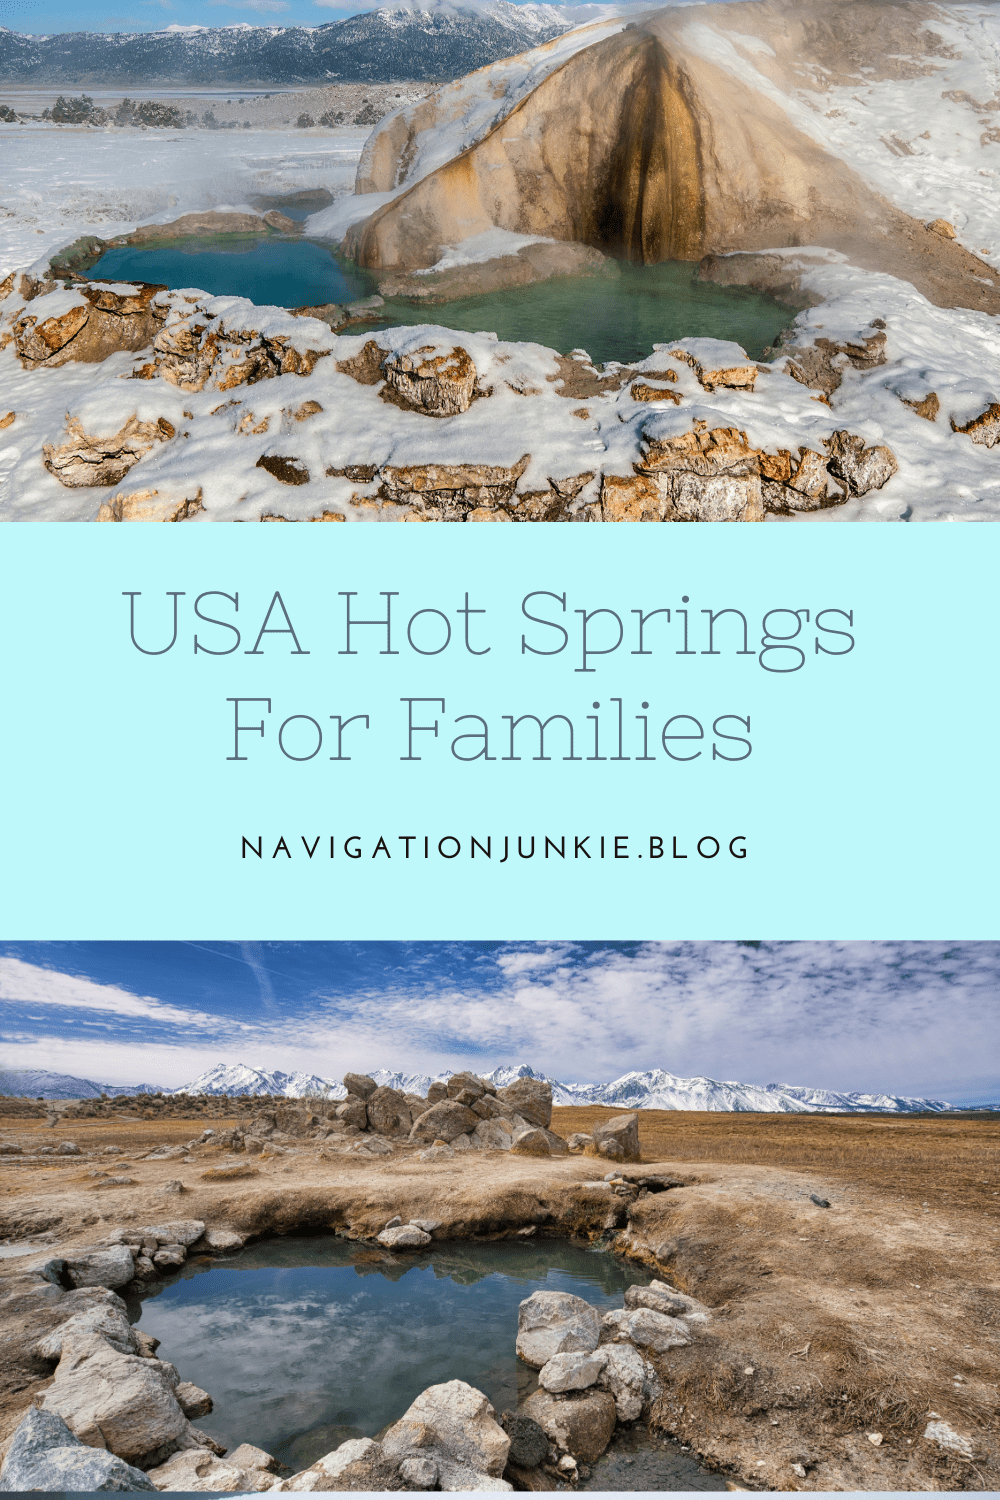 15 of the best hot springs for families in the USA  that will offer a relaxing, fun-filled family getaway during any season